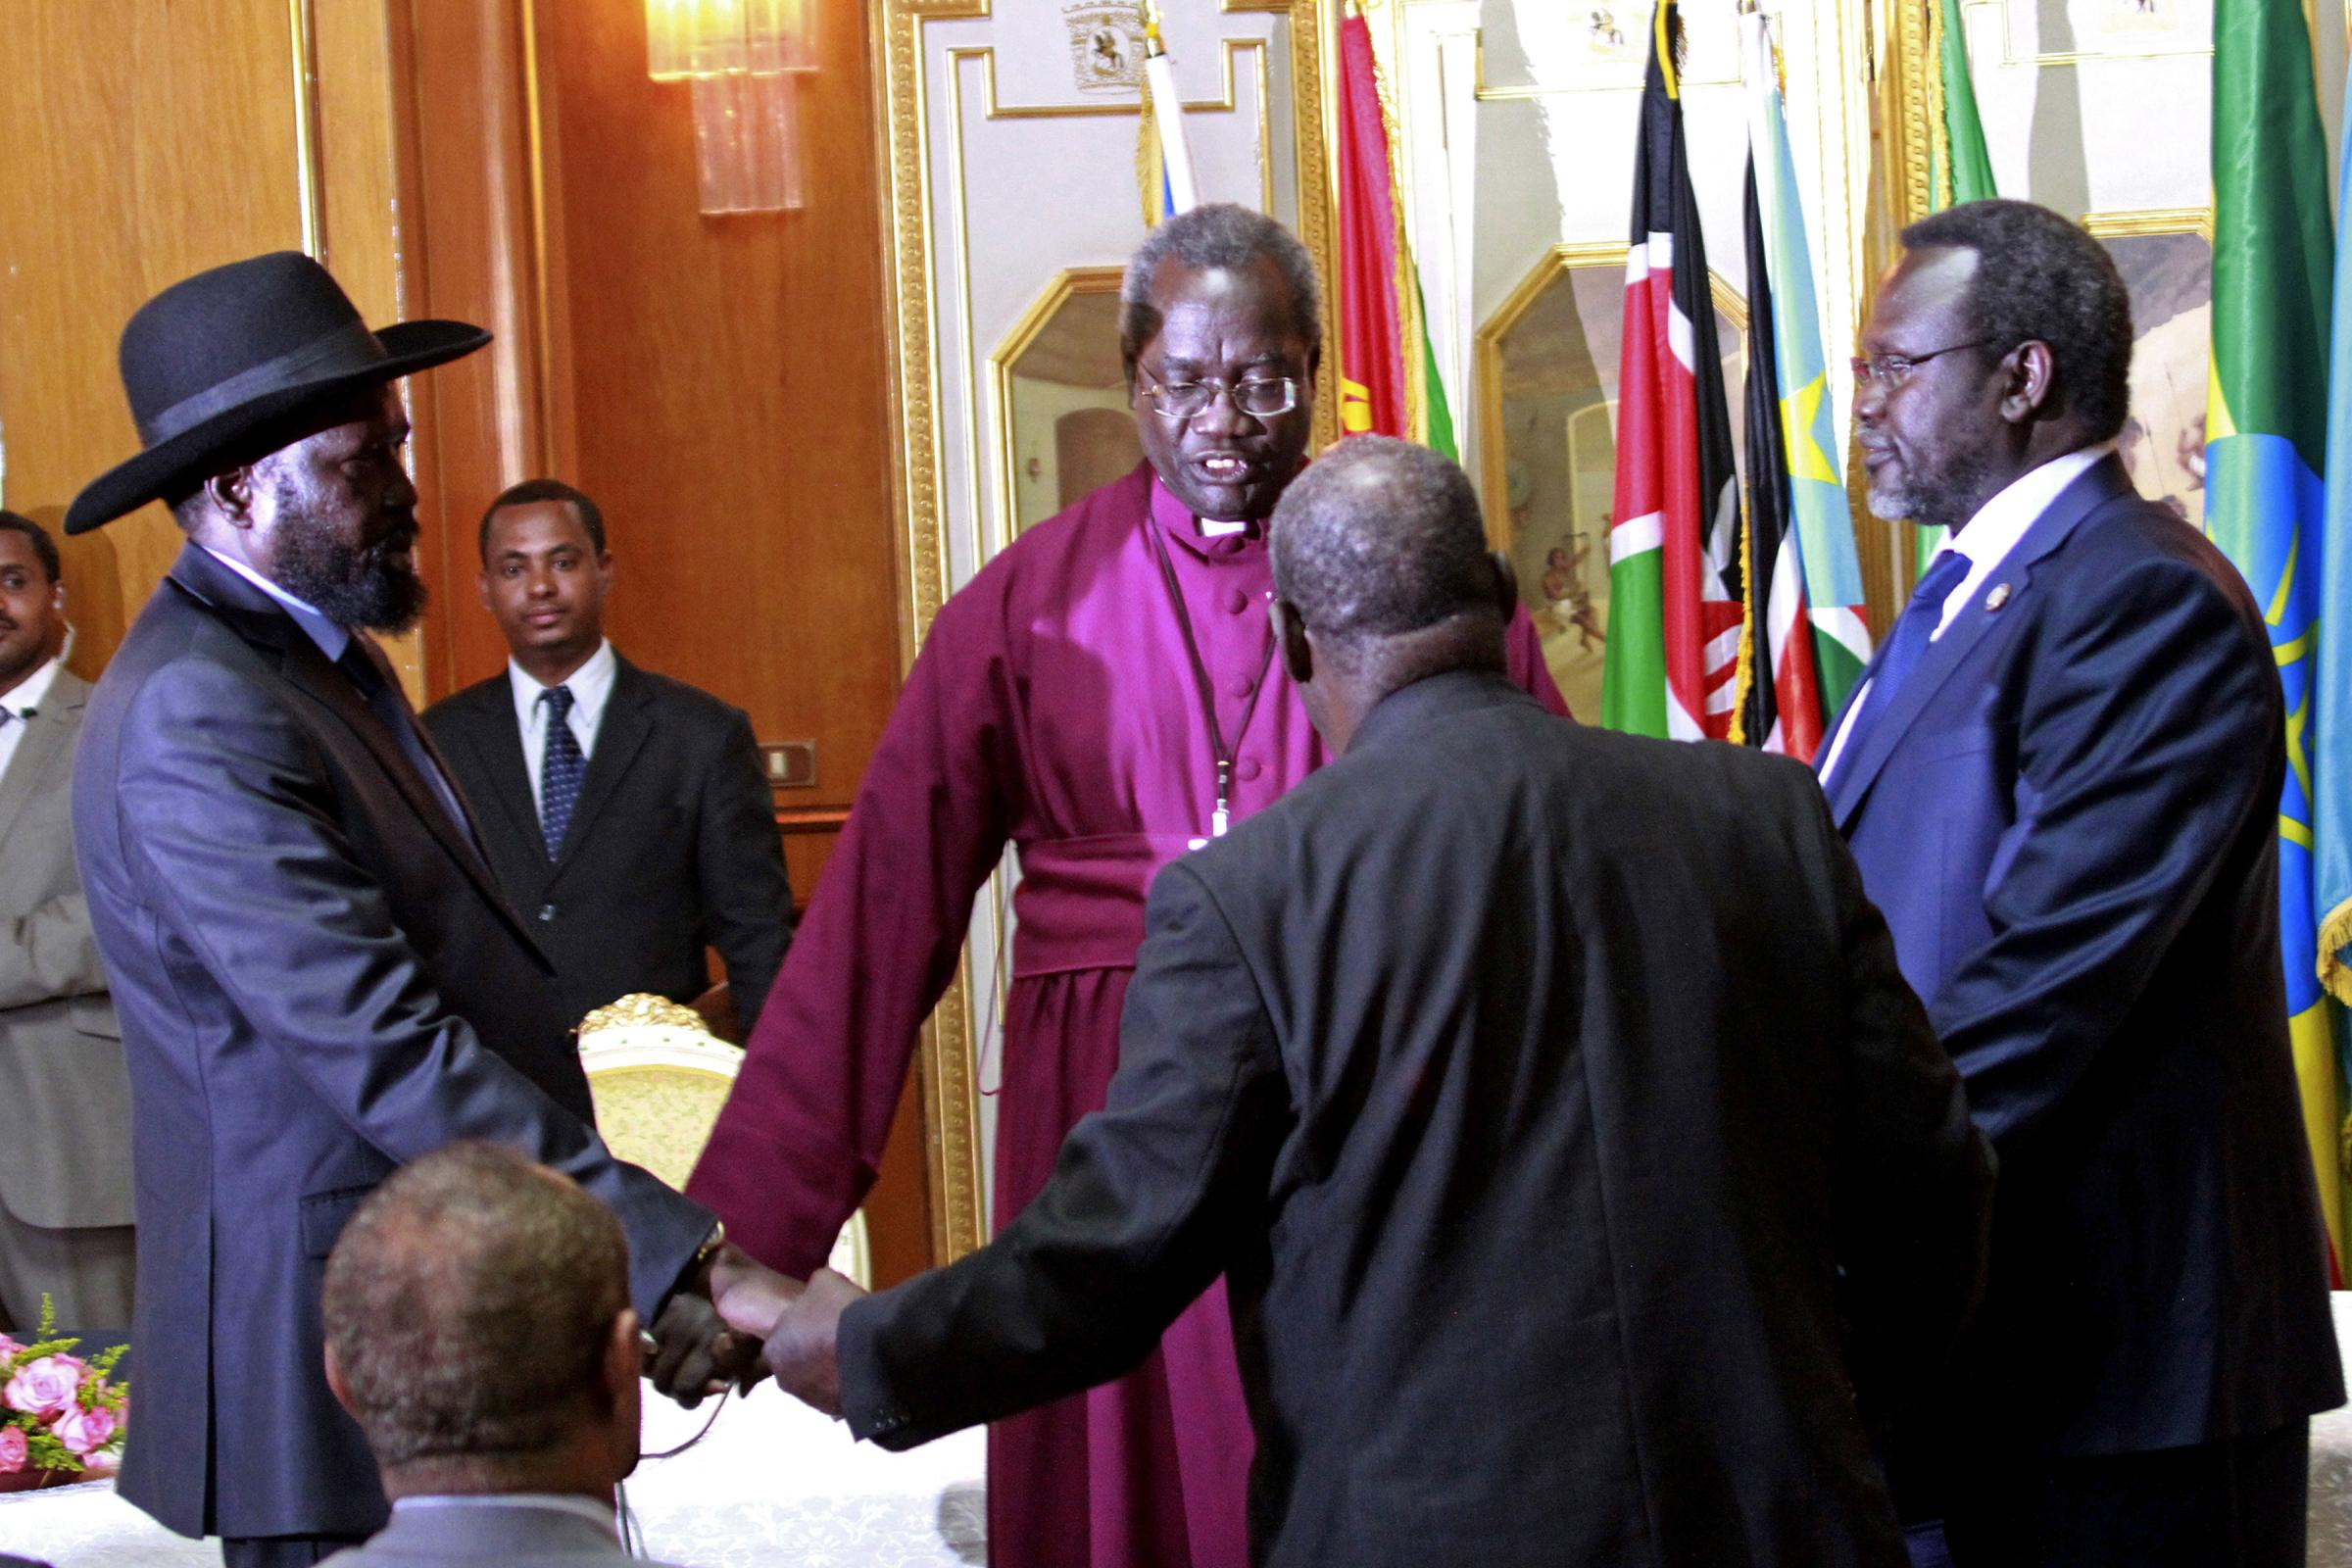 South sudanese leaders sign cease fire agreement kuow news and south sudans president salva kiir left and rebel leader riek machar right platinumwayz